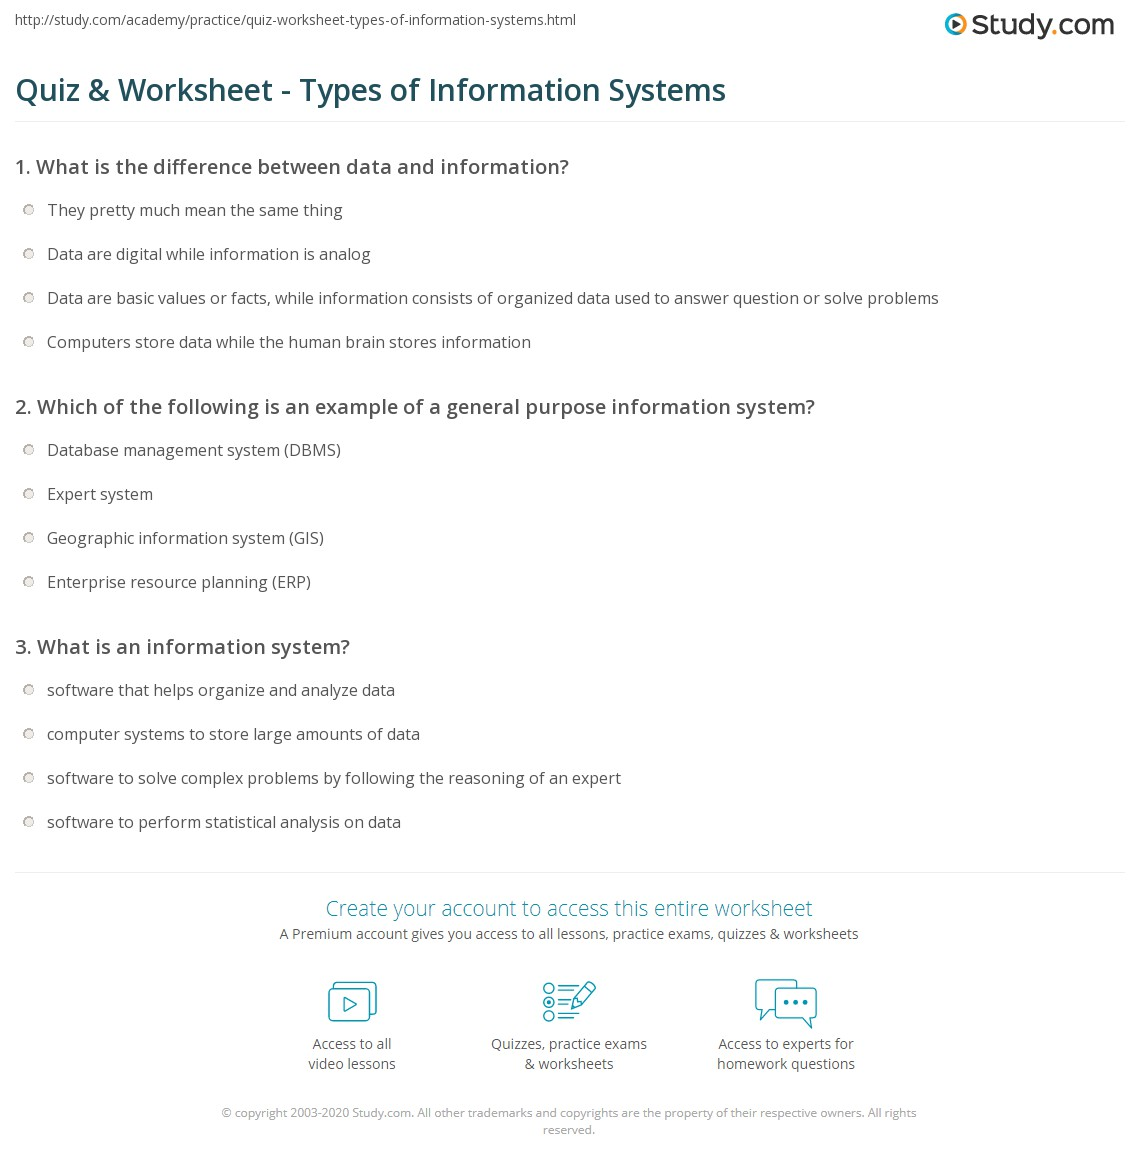 Quiz & Worksheet - Types of Information Systems | Study.com